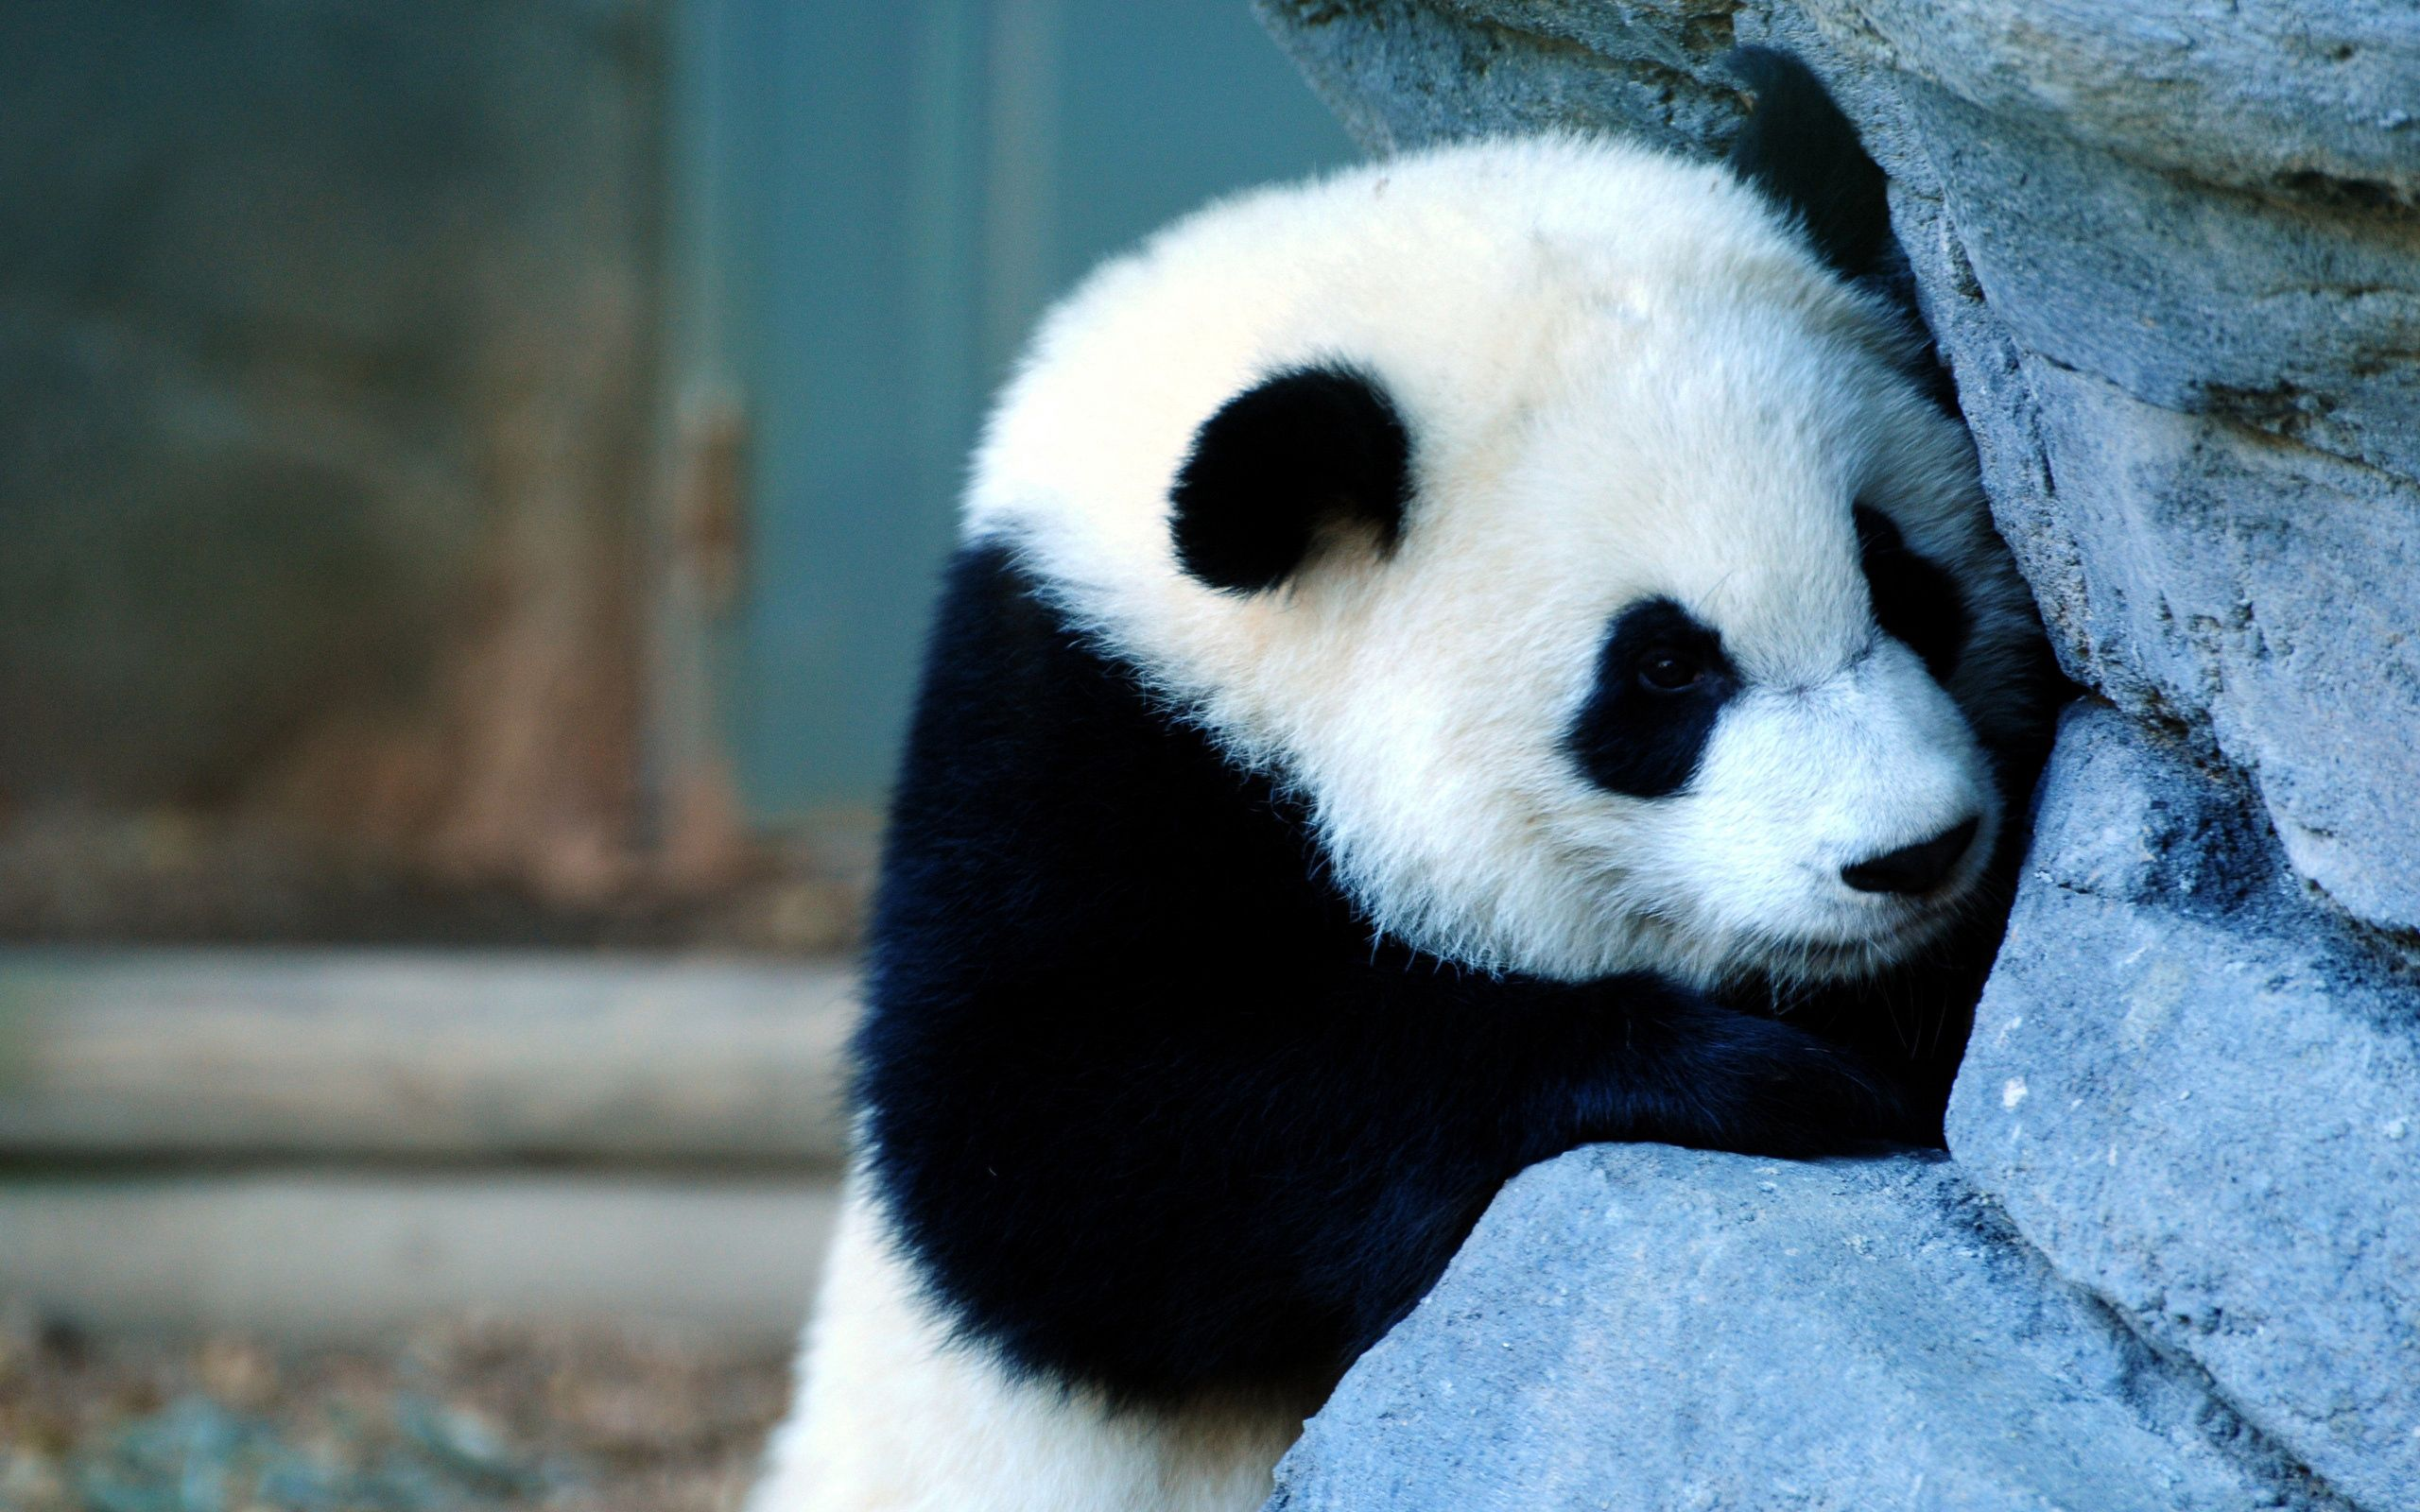 68547 download wallpaper Animals, Panda, Wall, Sadness, Sorrow, Kid, Tot screensavers and pictures for free